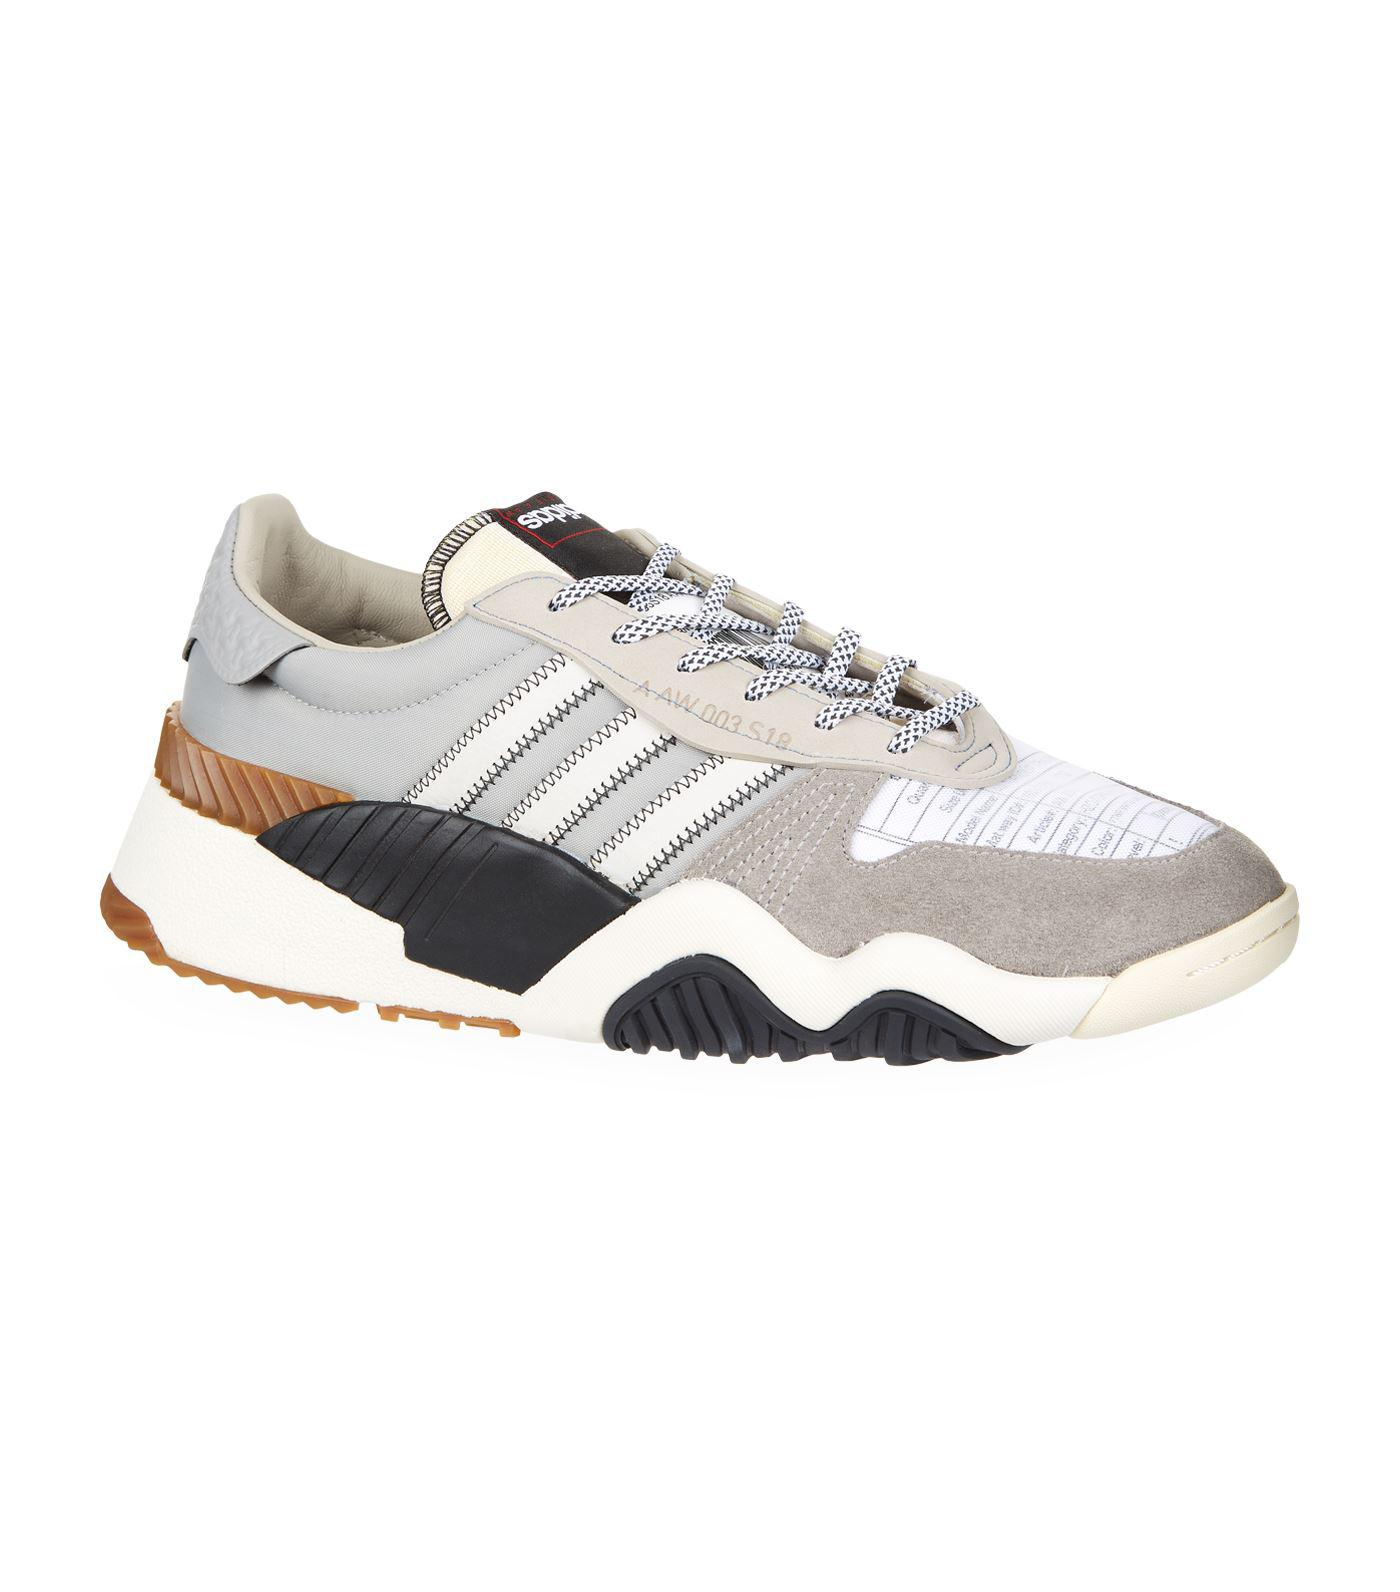 cheap for discount 8807b 6f9e8 adidas Originals X Alexander Wang Turnout Sneakers in Brown